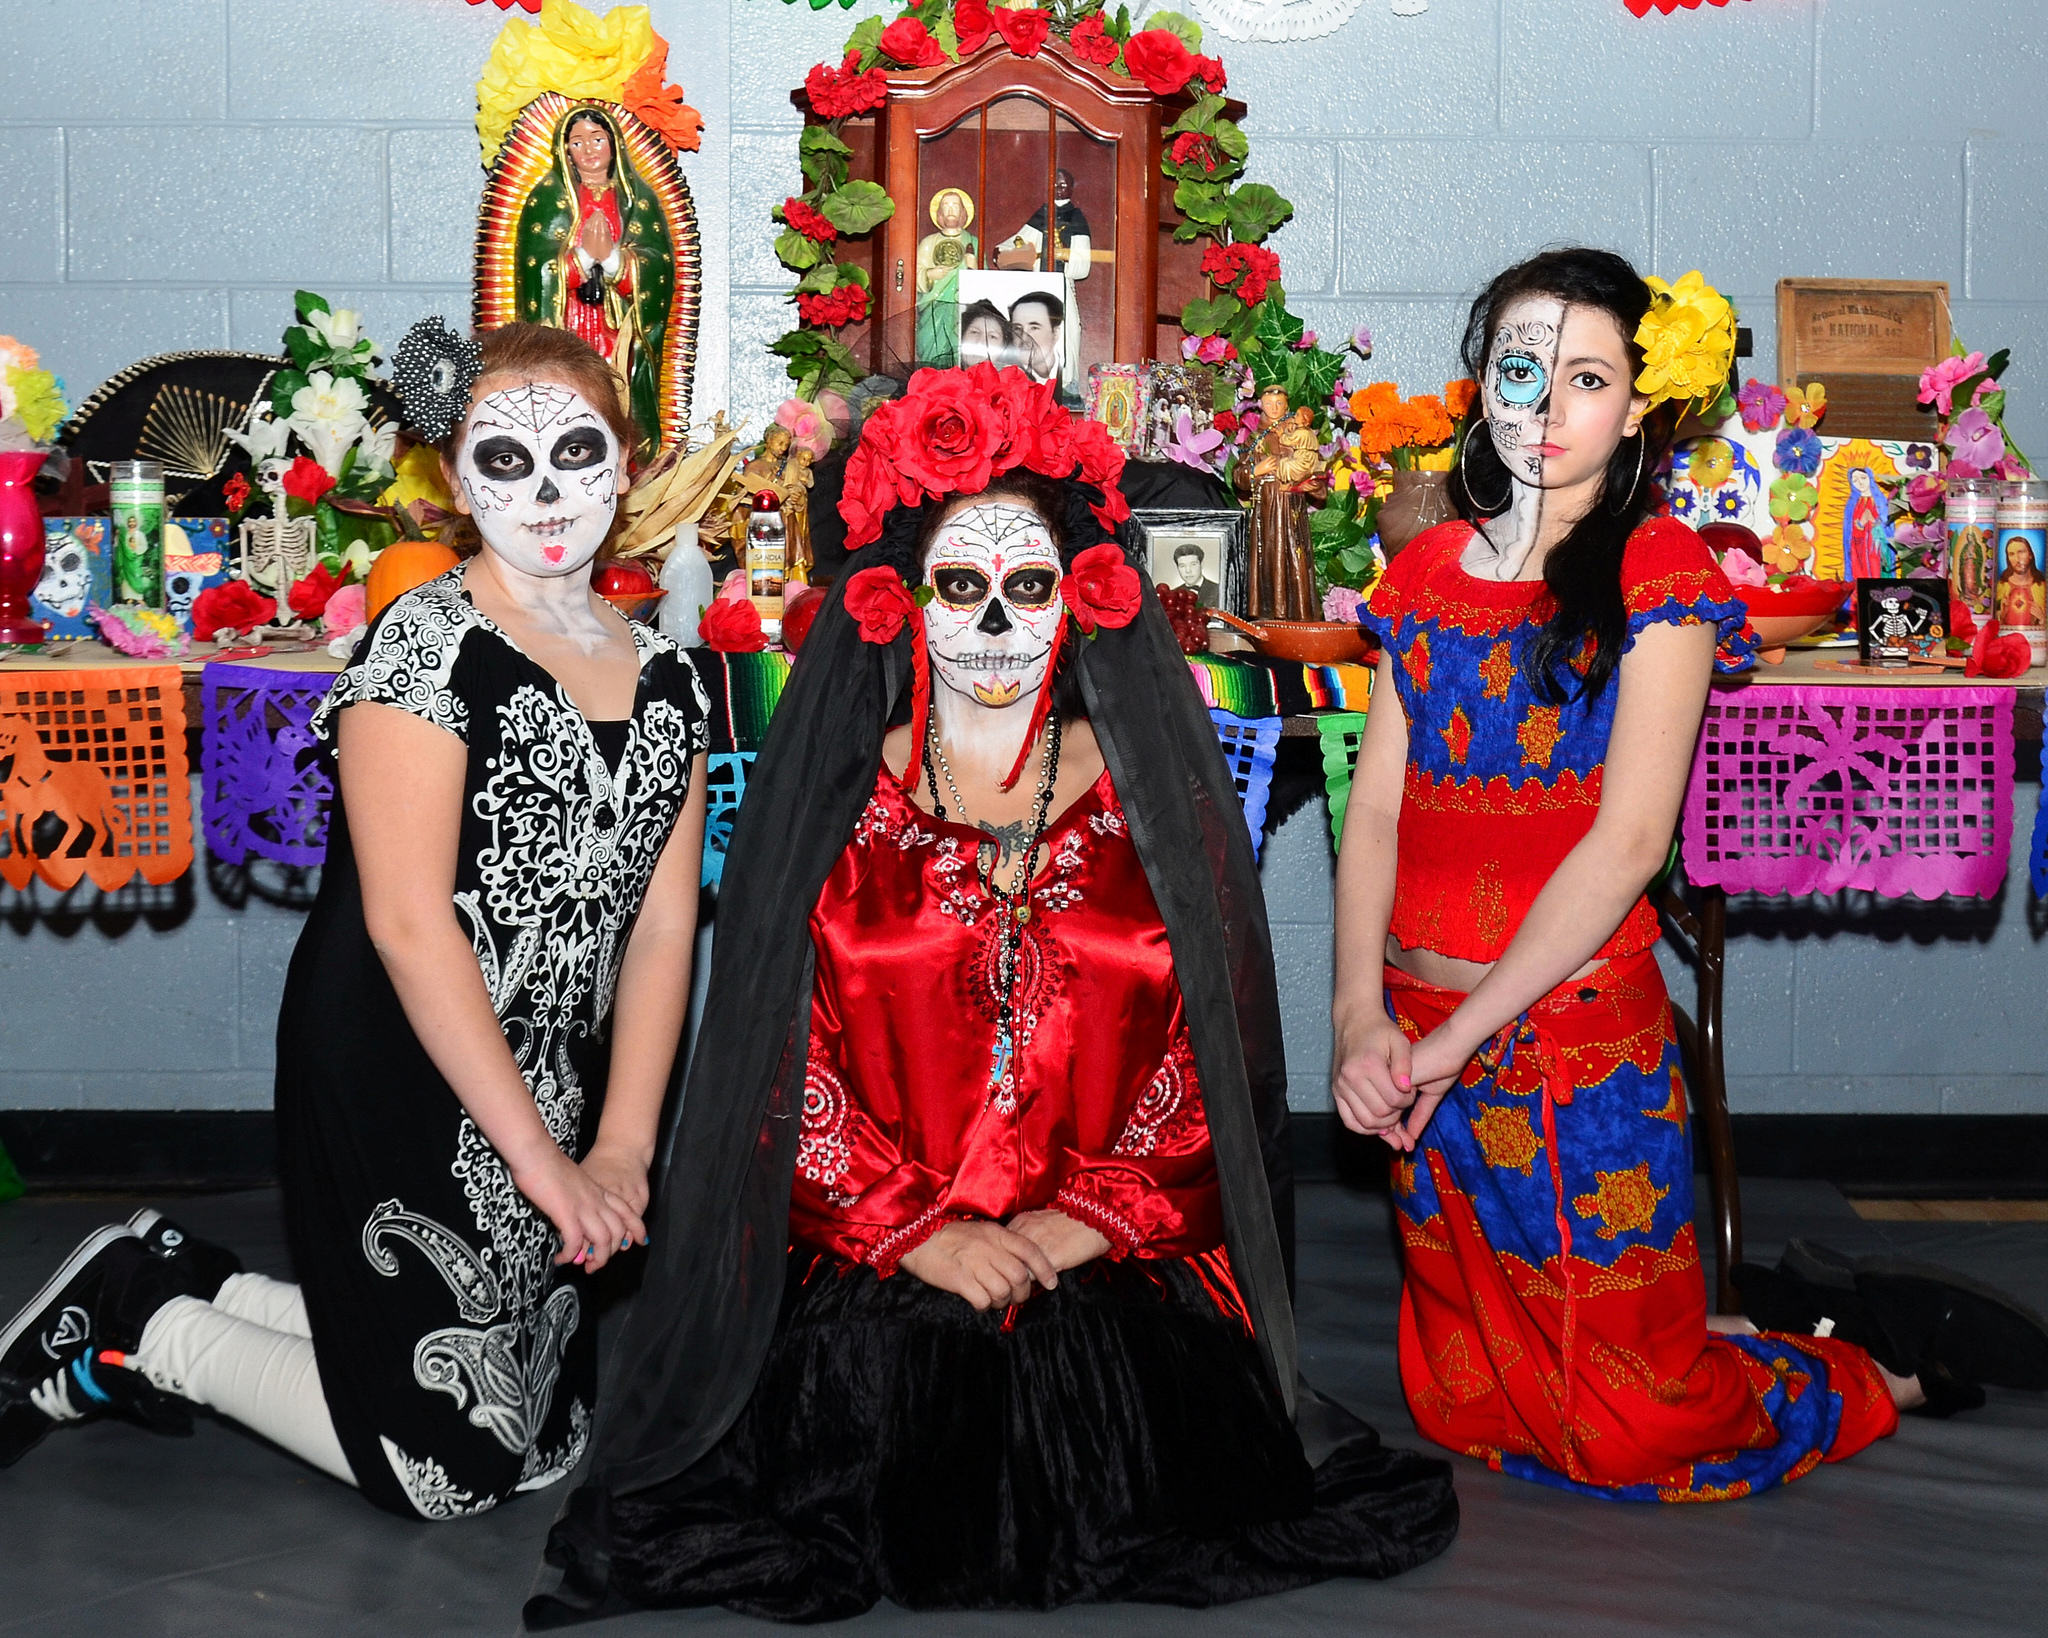 day of the dead costumes for dia de los muertos celebrations